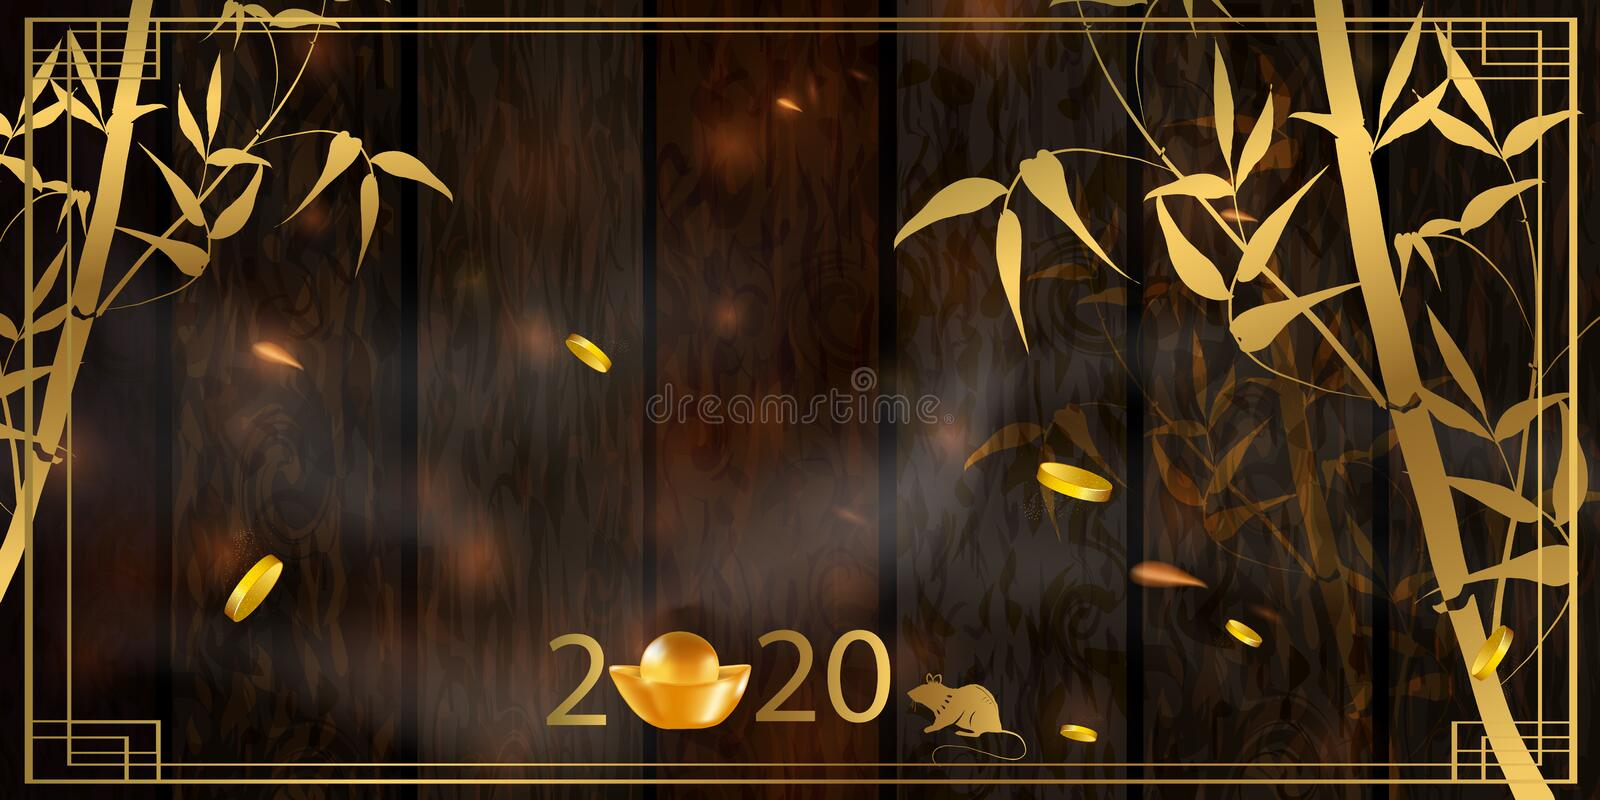 2020 Chinese New Year Rat zodiac sign. Red and gold festive background with rat. Chinese New Year Background with Lanterns and Light Effect. Banner, poster vector illustration